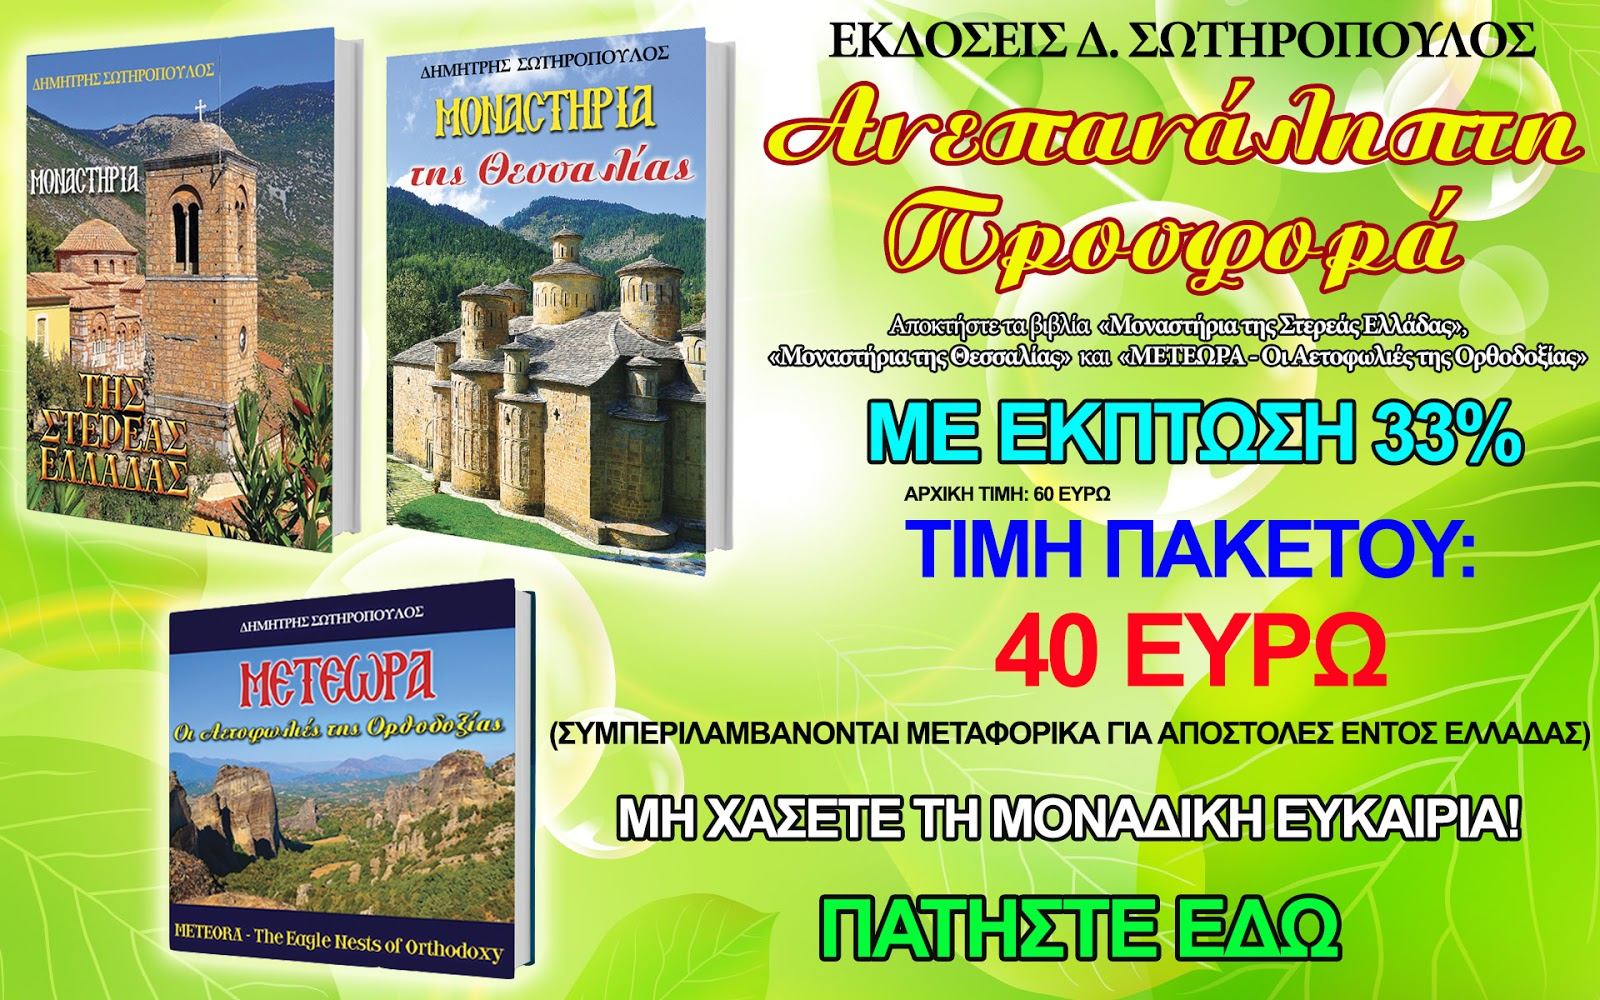 https://www.dimitrisotiropoulosbooks.com/collections/custom-collection/products/40